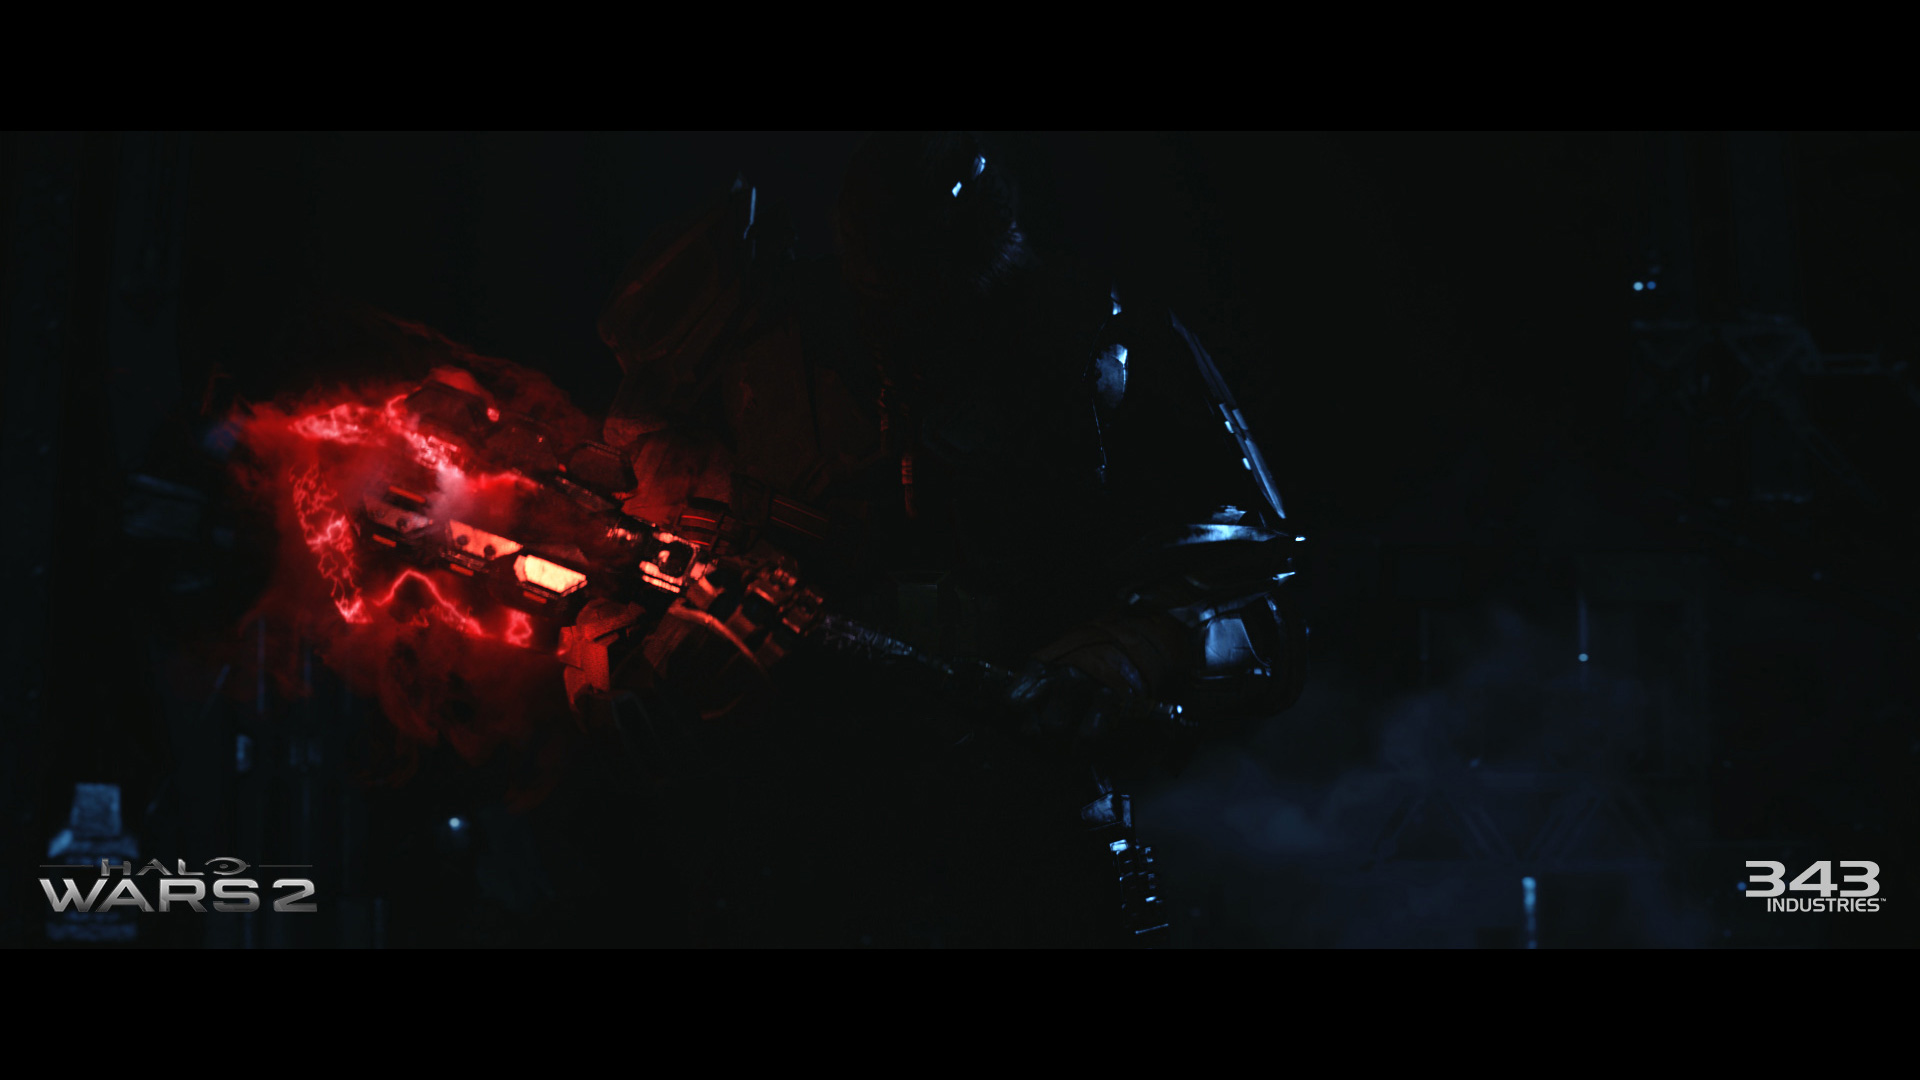 halo-wars-2-teaser-still-ambush-4bb9fc7a